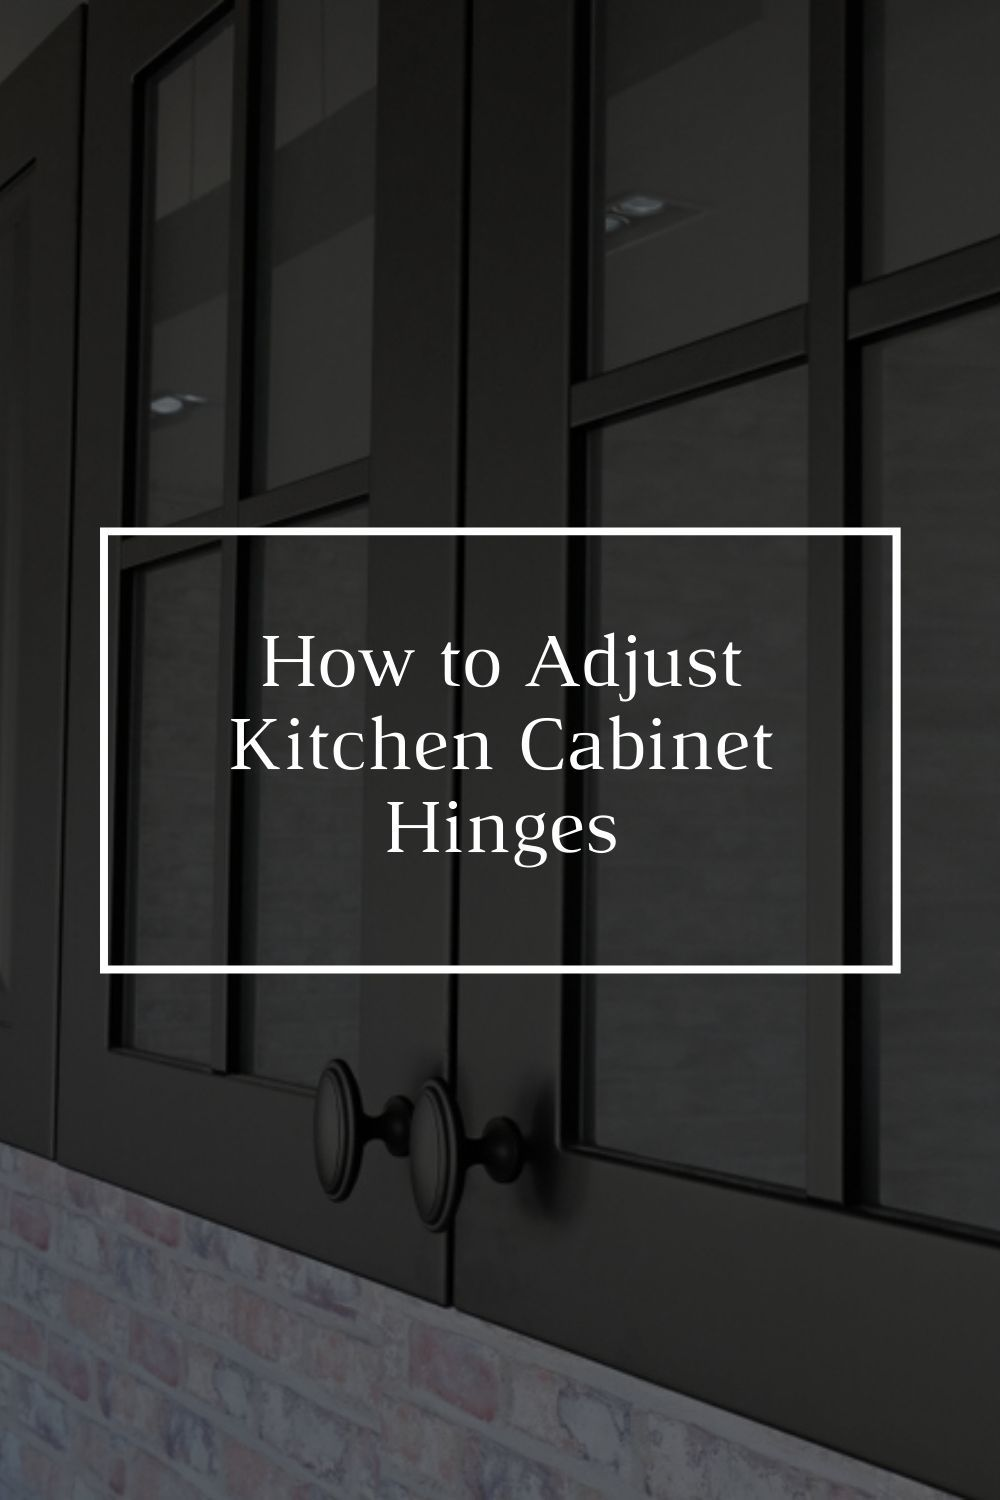 How To Adjust Kitchen Cabinet Hinges In 2020 Kitchen Cabinets Installing Laminate Countertops Painting Kitchen Countertops